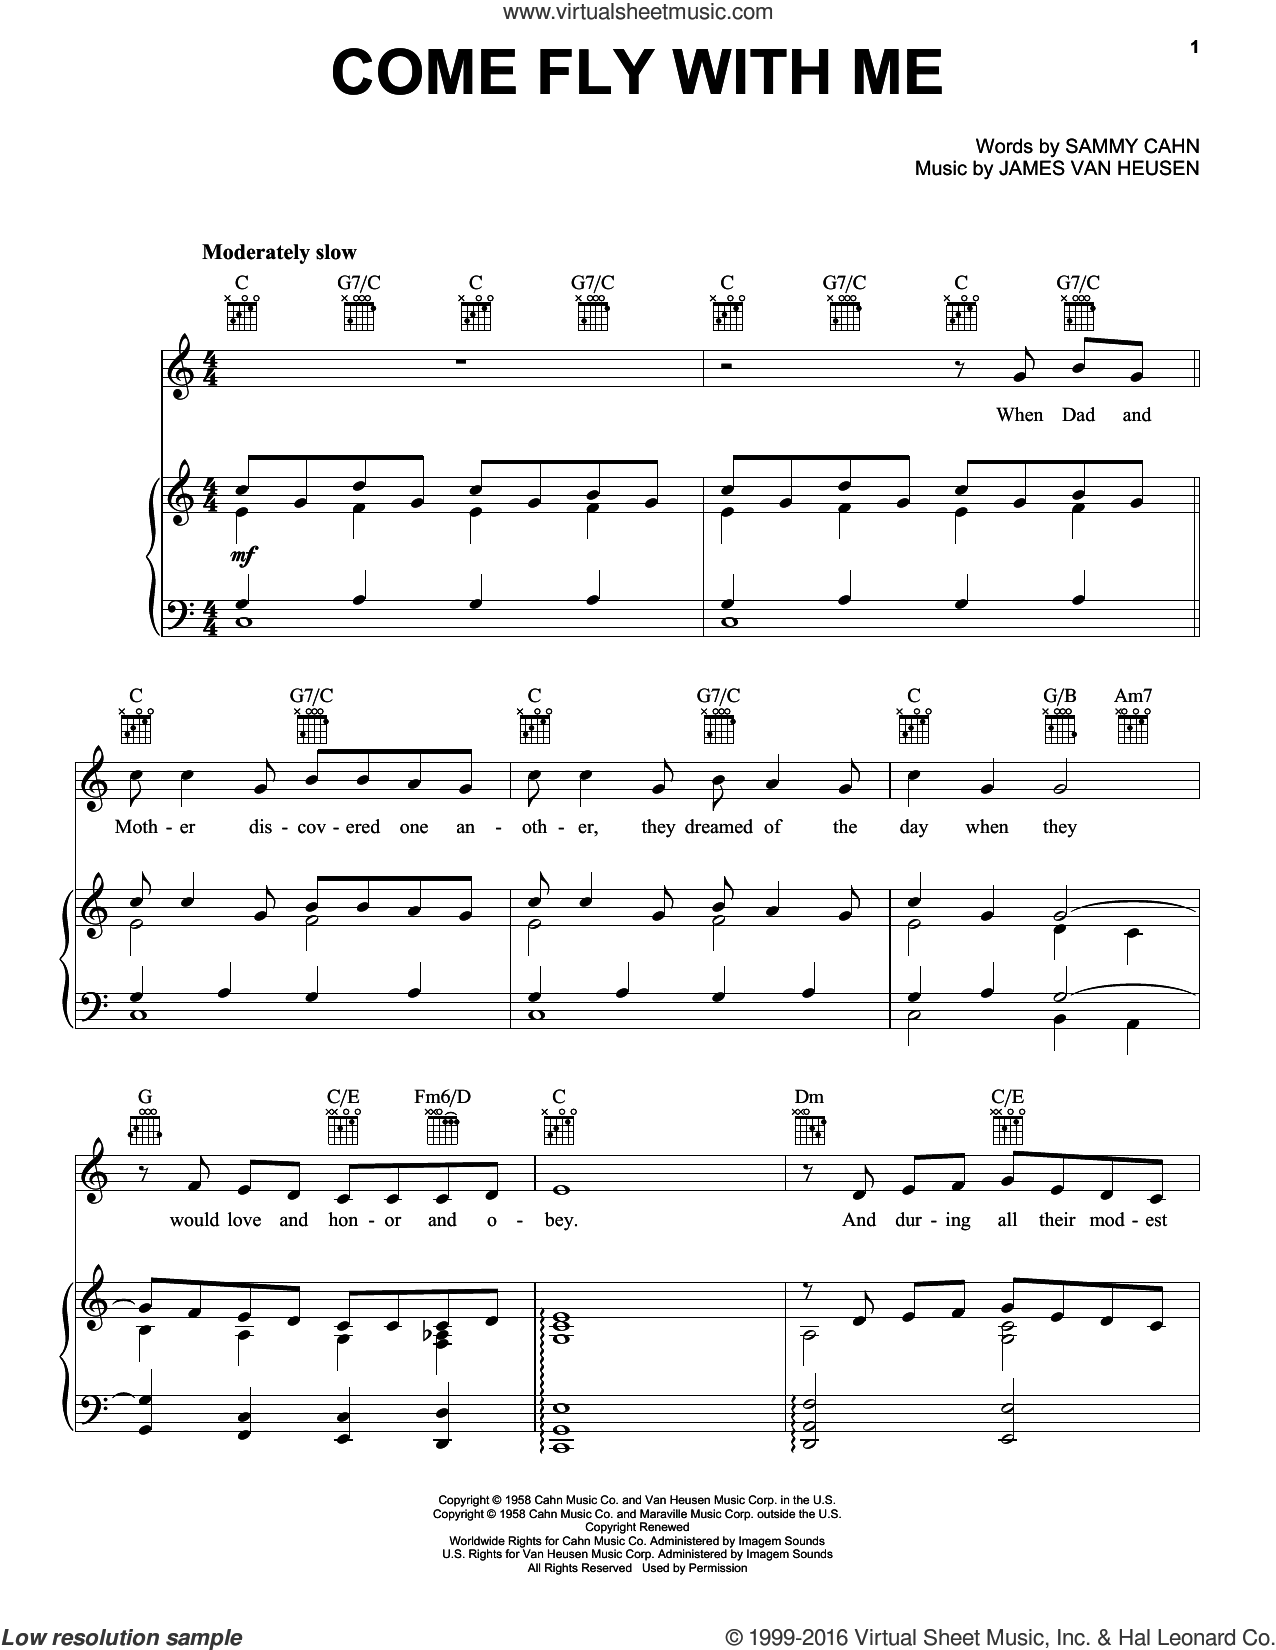 Come Fly With Me sheet music for voice, piano or guitar by Sammy Cahn